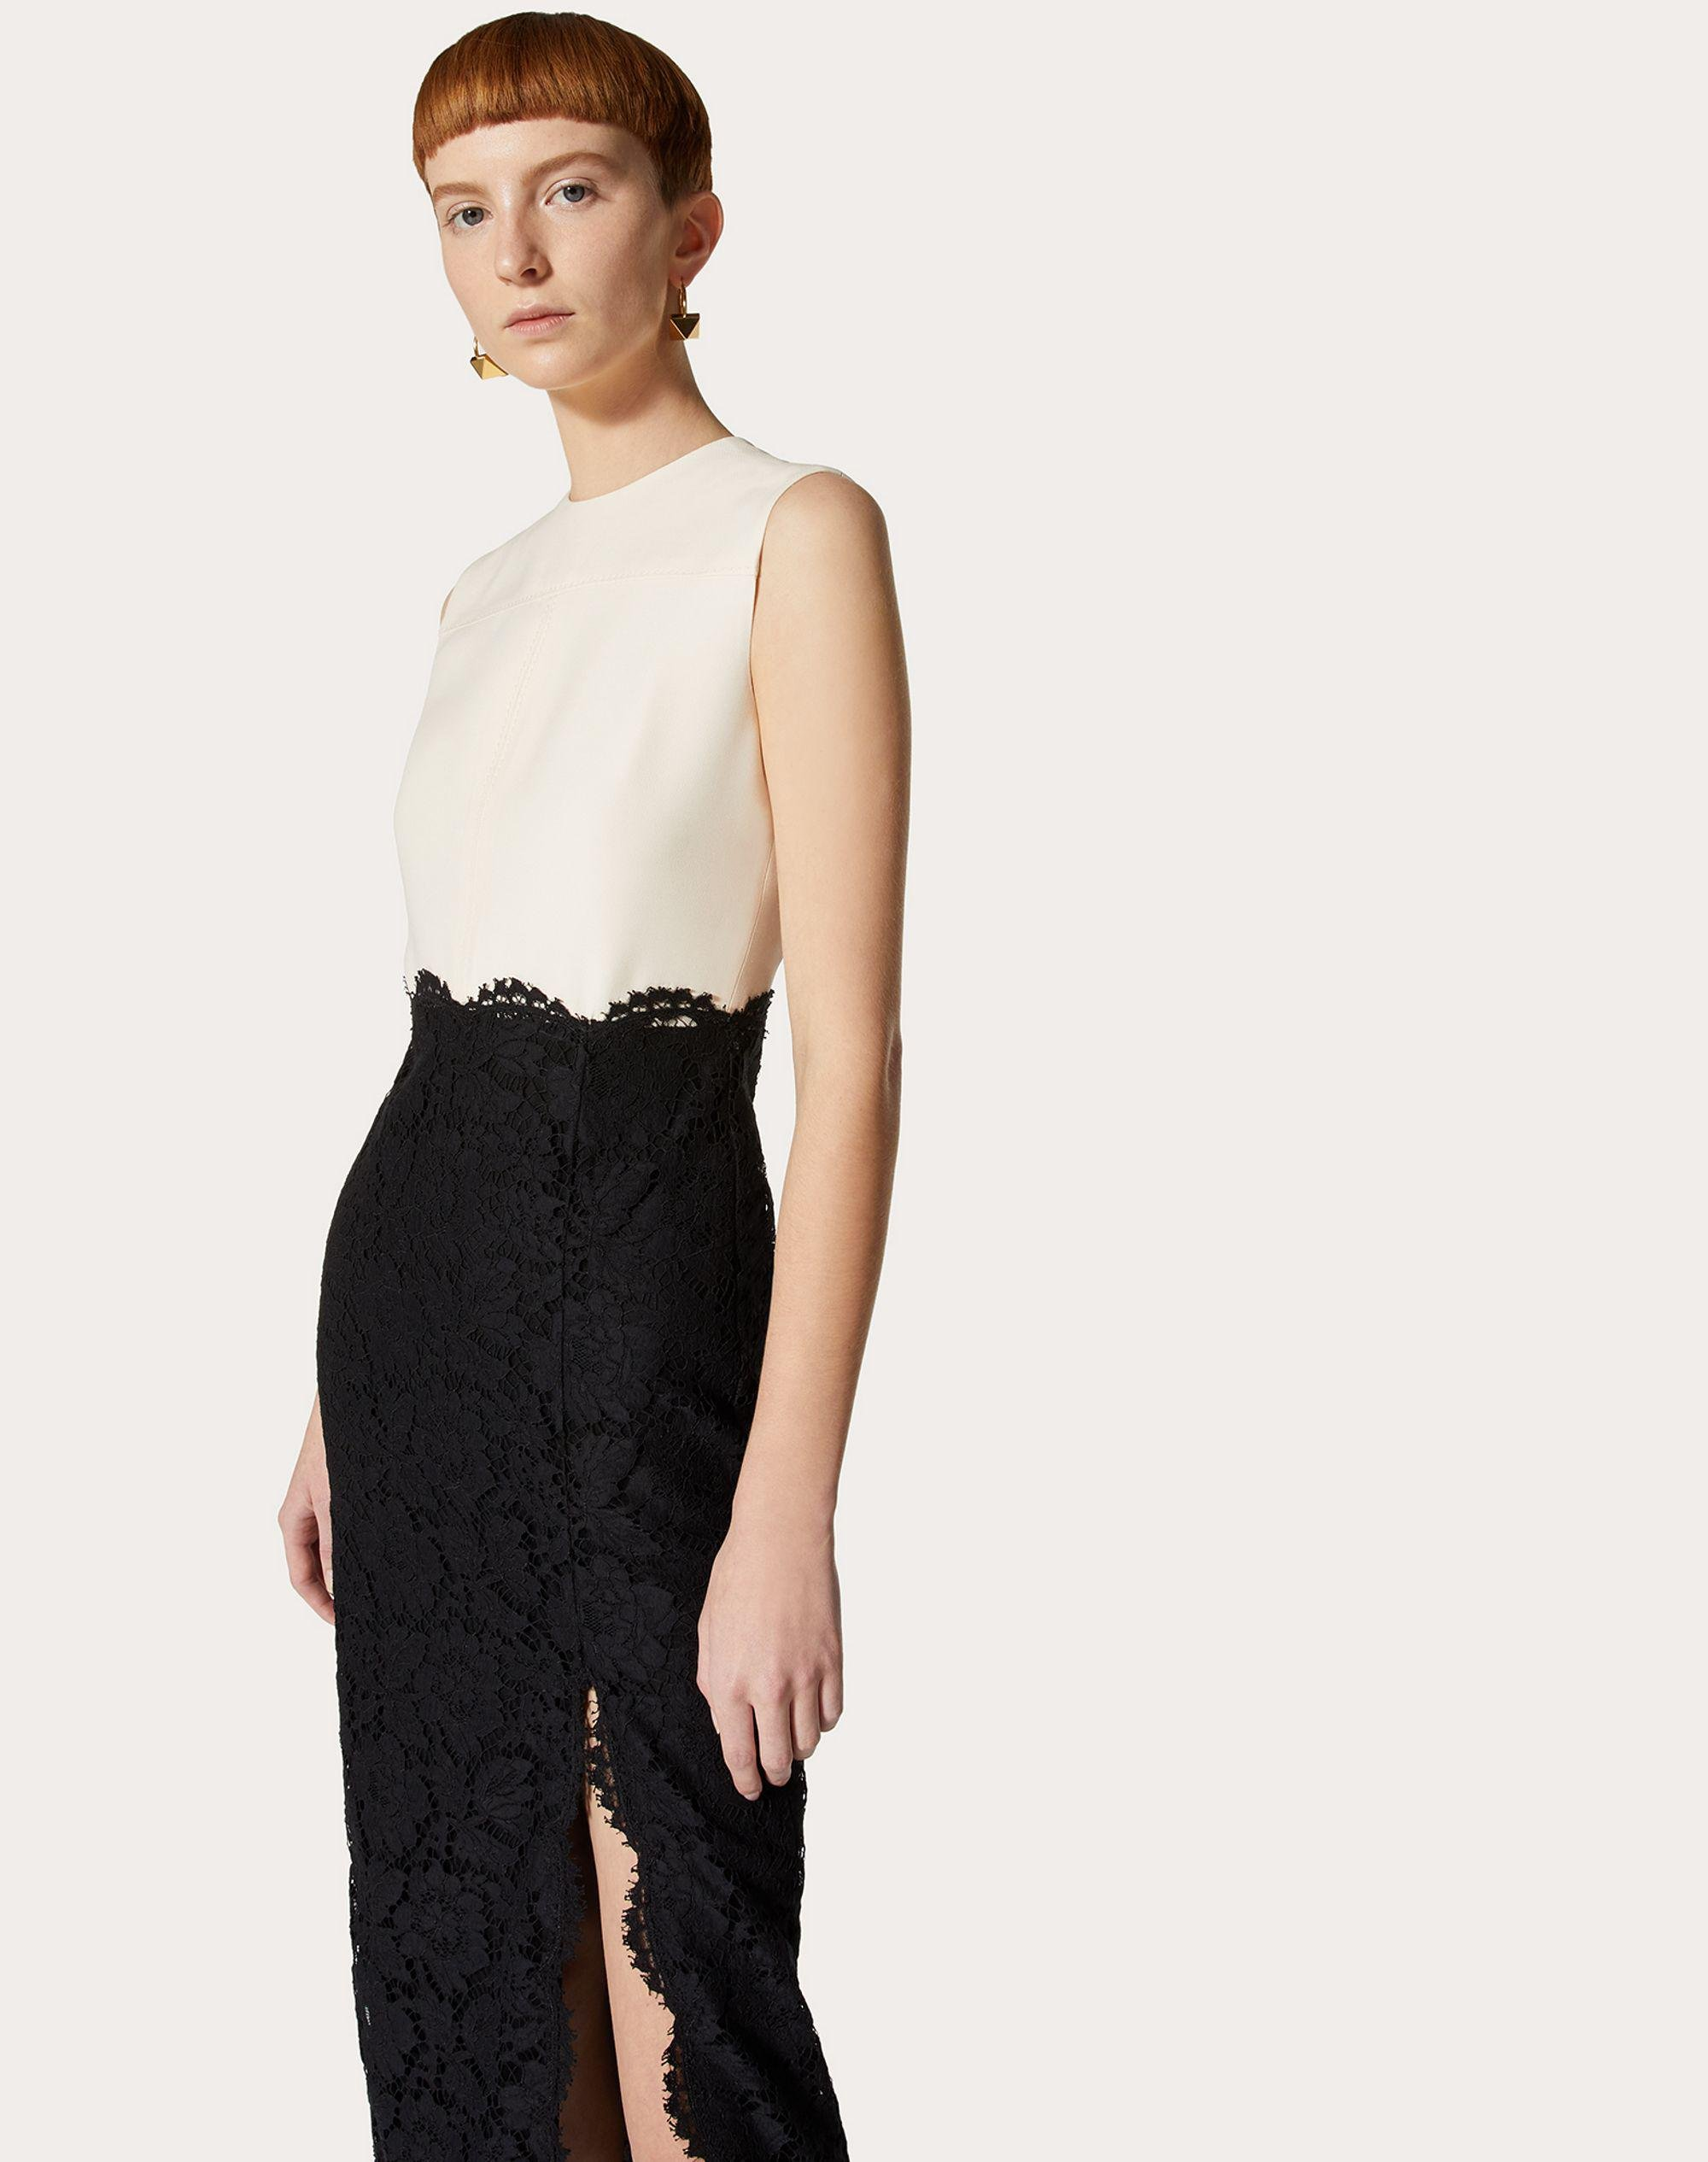 CREPE COUTURE AND HEAVY LACE DRESS 3